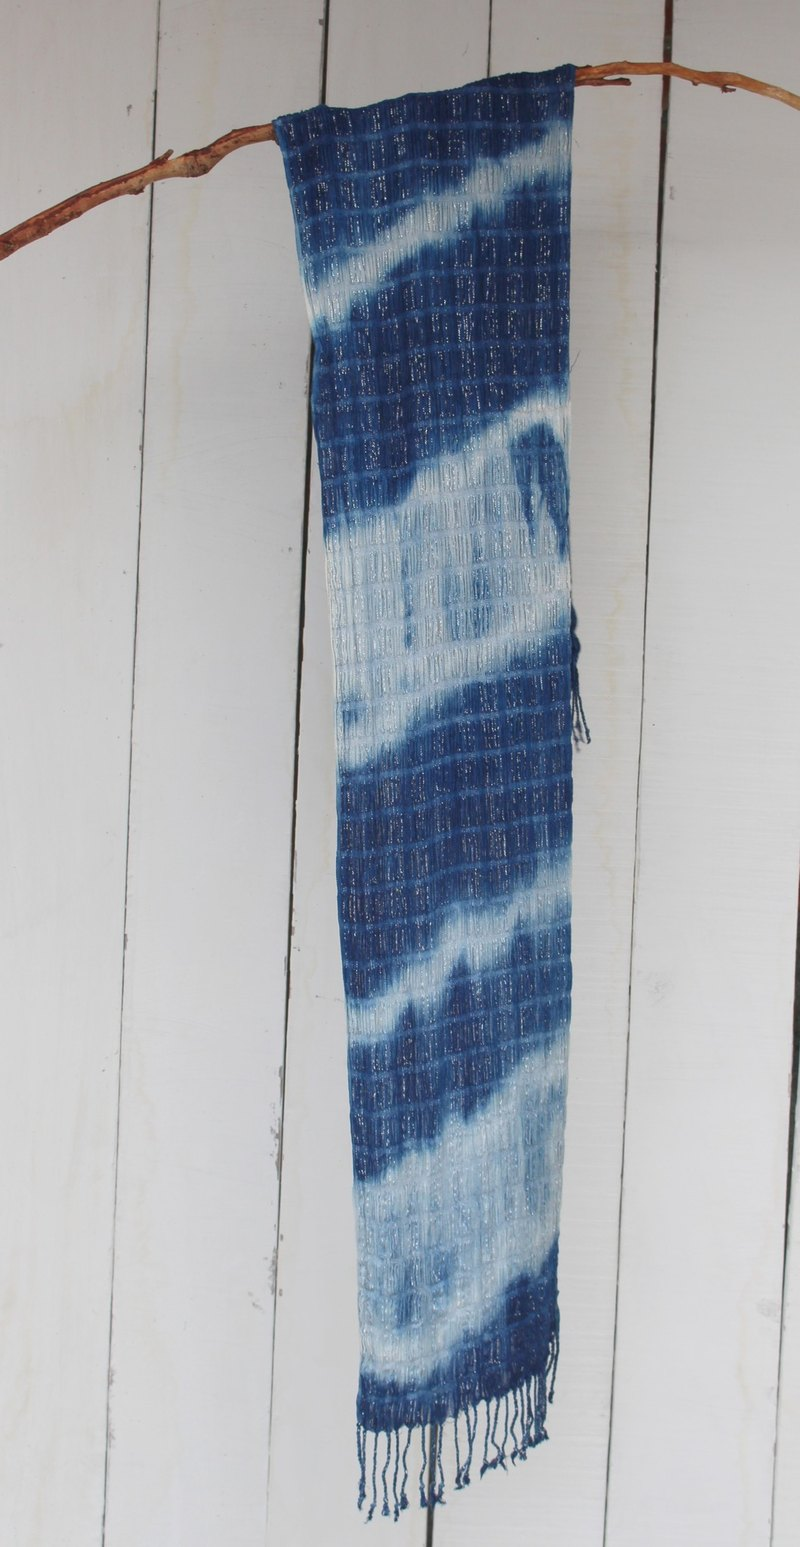 Free to stain isvara blue dye cotton scarf energy series fluctuations